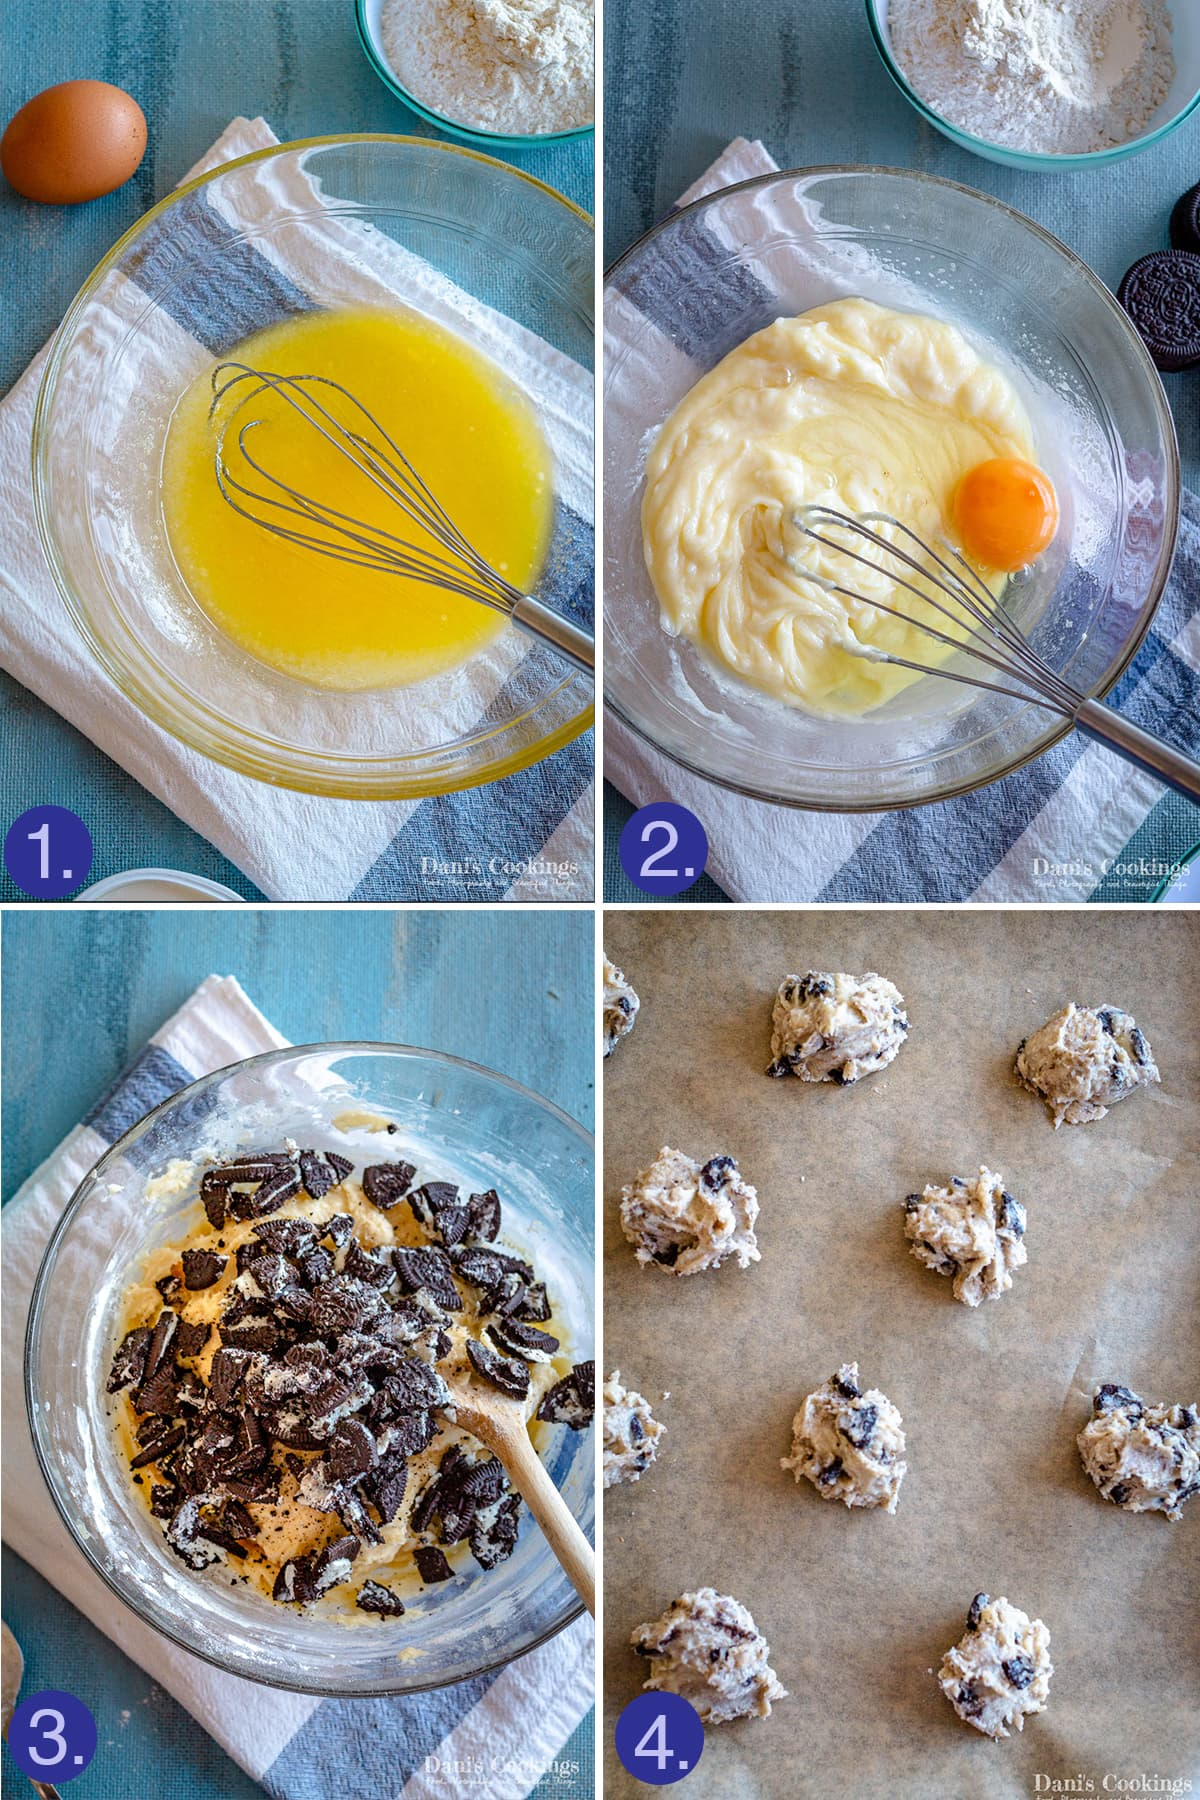 preparation steps: mix butter and sugar, mix in cream cheese and egg, mix in oreos and arrange the balls